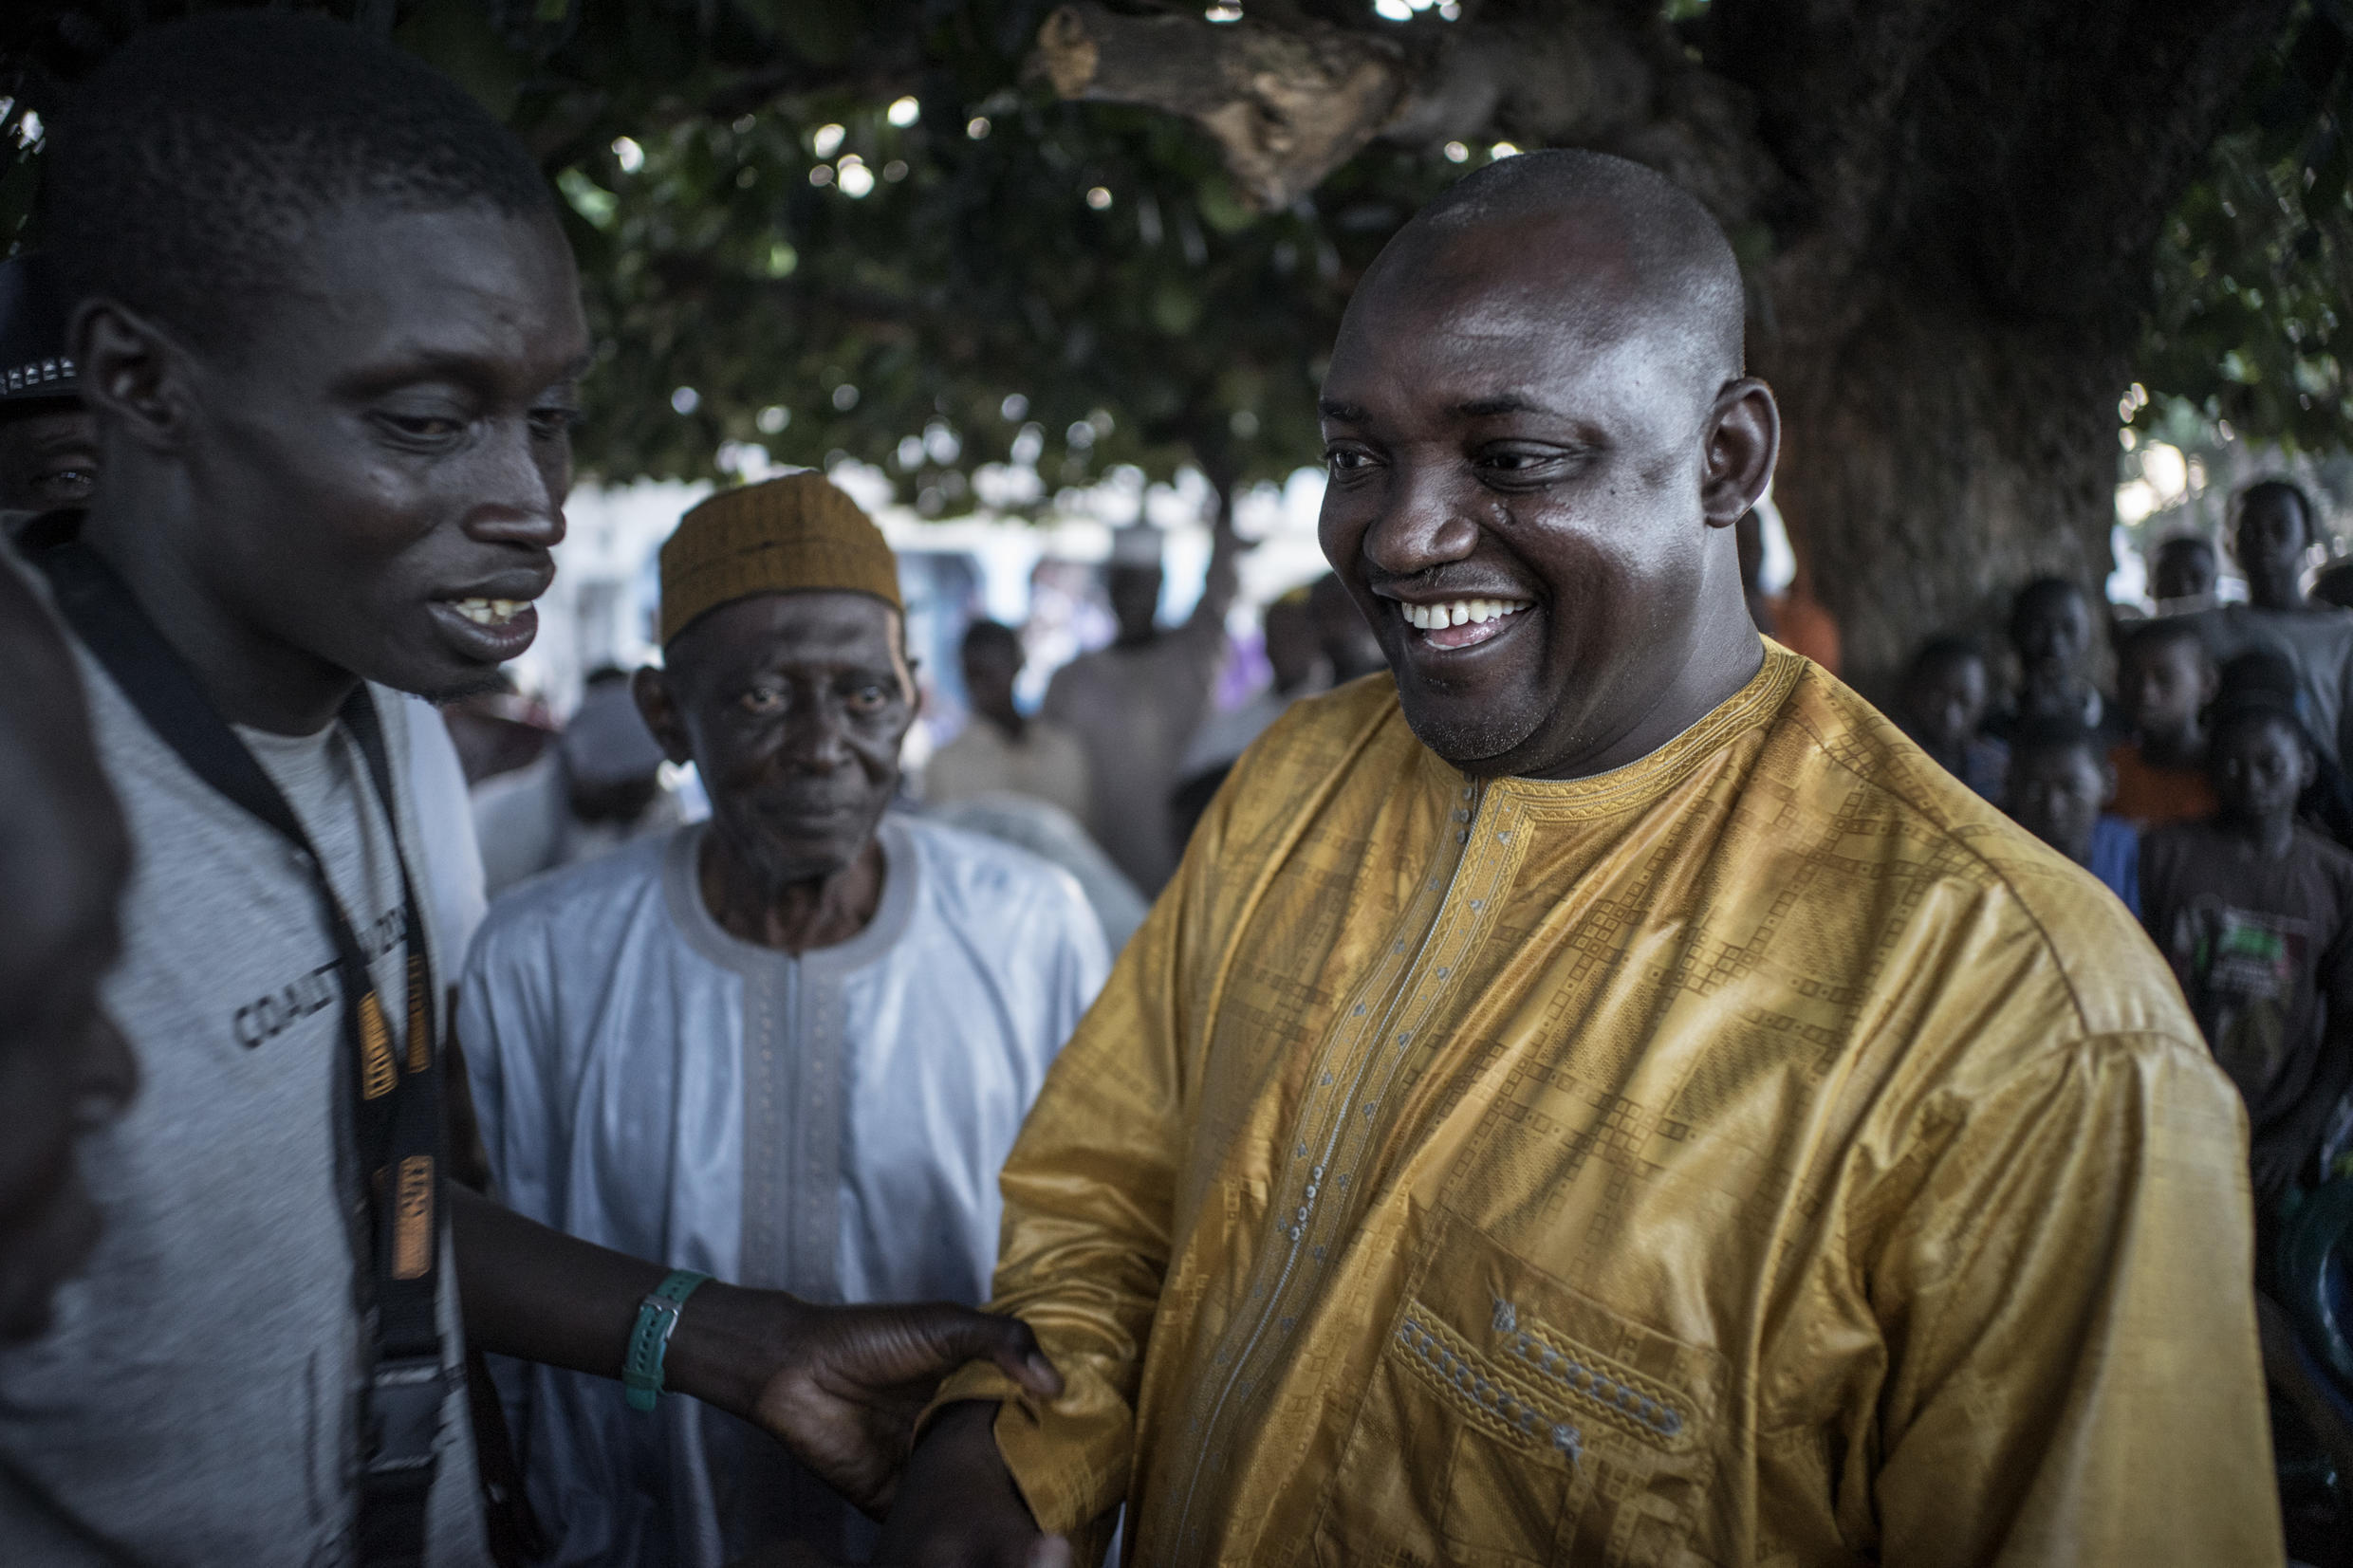 Adama Barrow greets supporters at a campaign rally in Jambur on 26 November 2016.